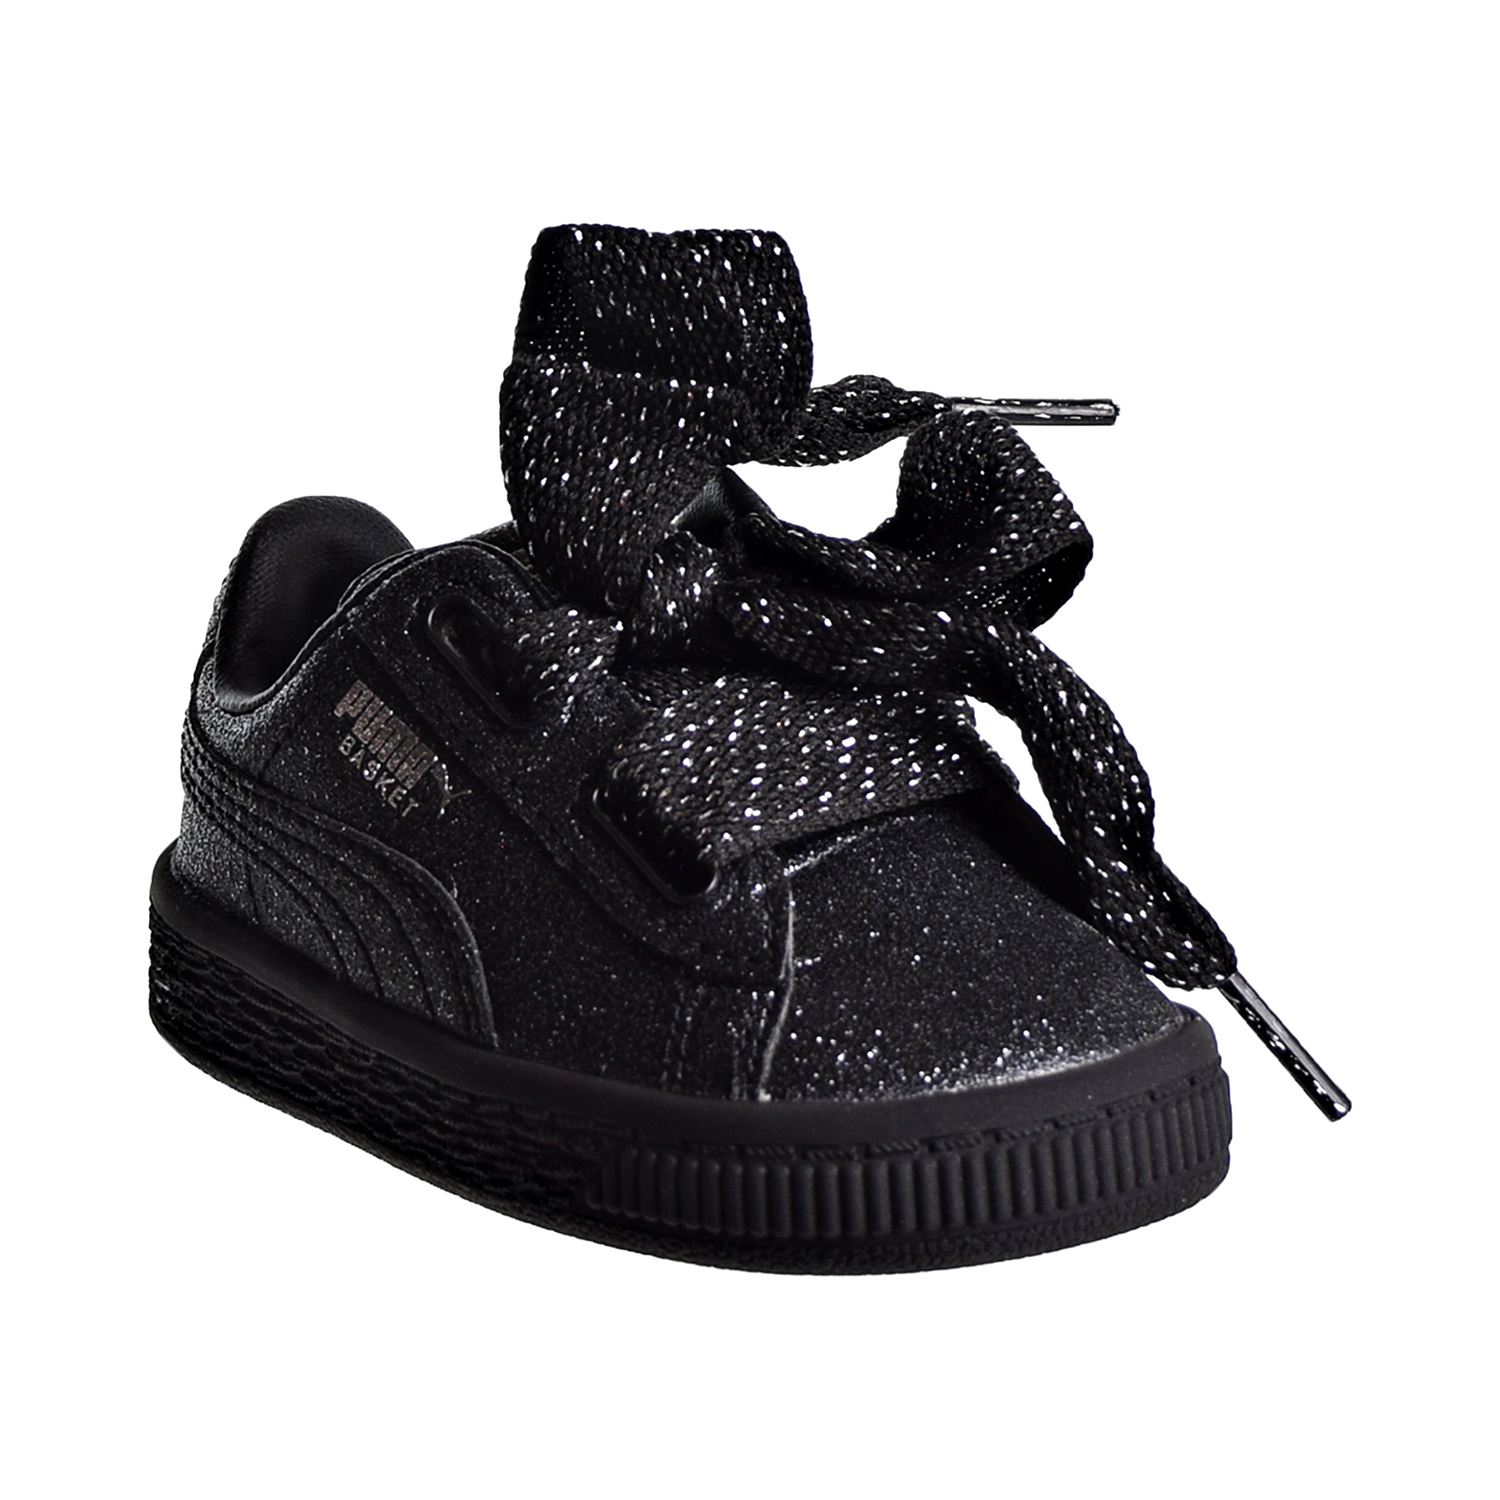 d162edb7332 Puma Basket Heart Holiday Glamour Toddler s Shoes Black Silver 367632-02